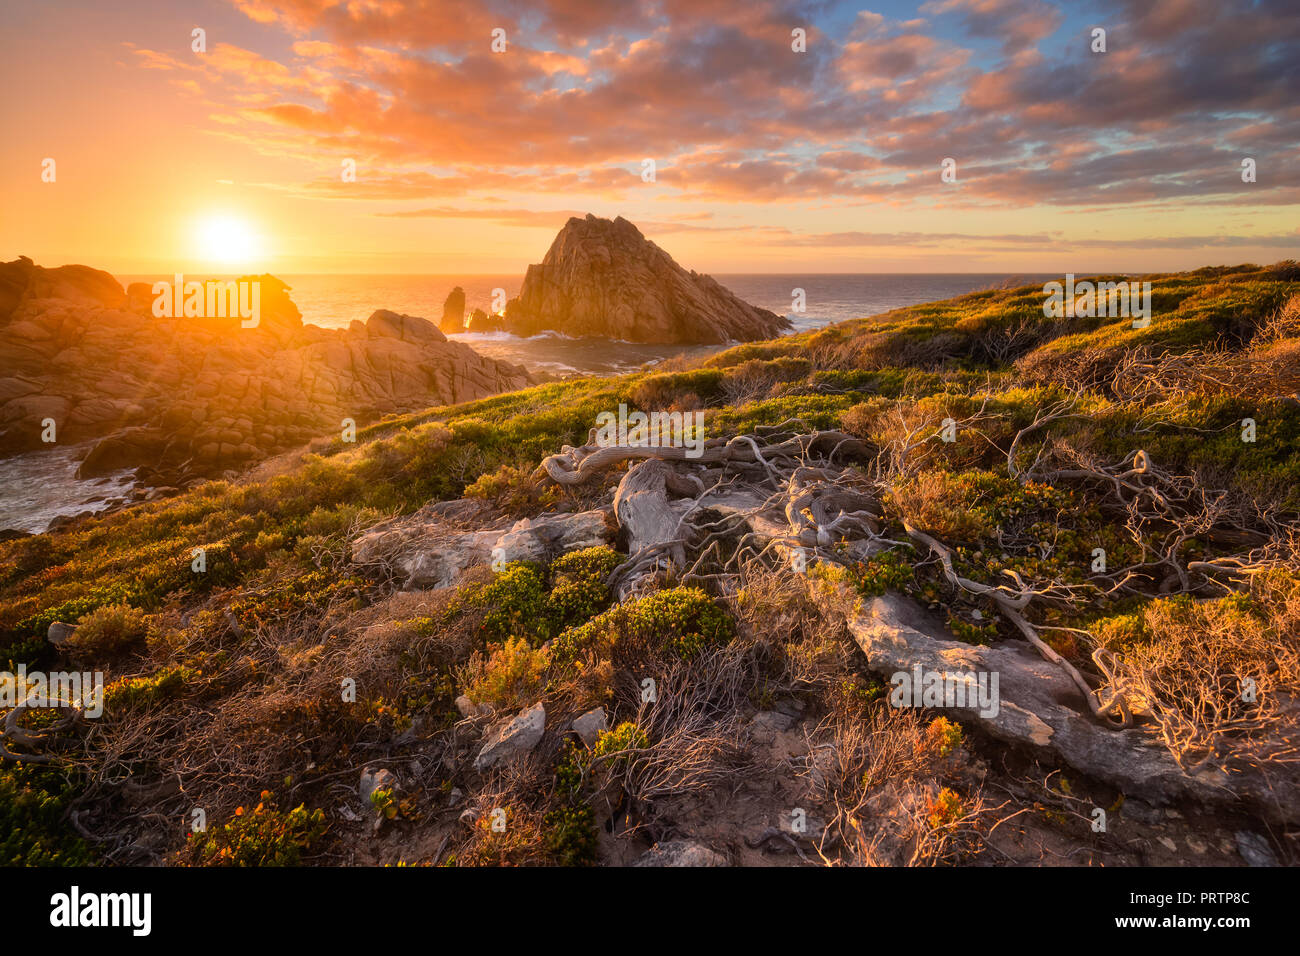 Sugarloaf Rock Immagini Stock